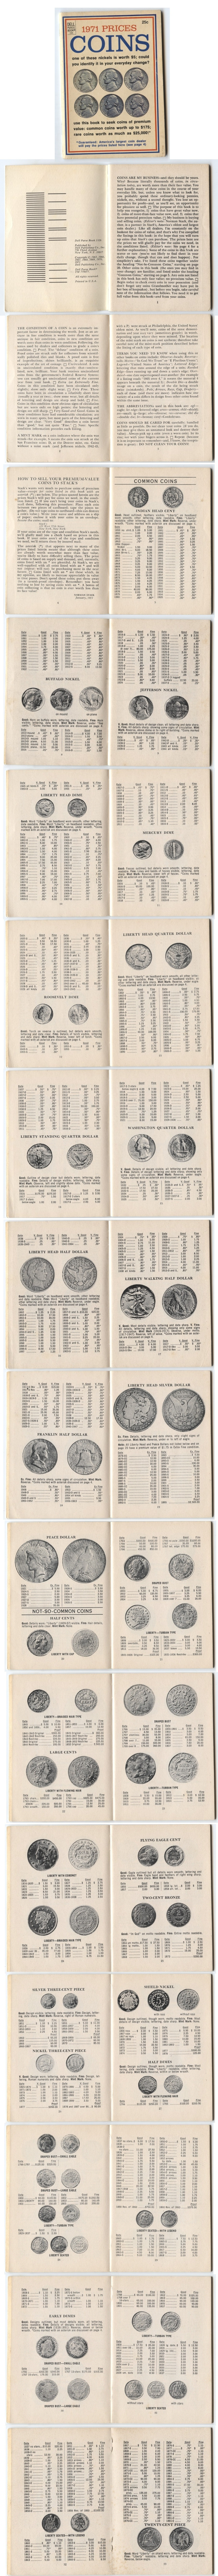 1971 Prices Coins by Norman Stack Part 1